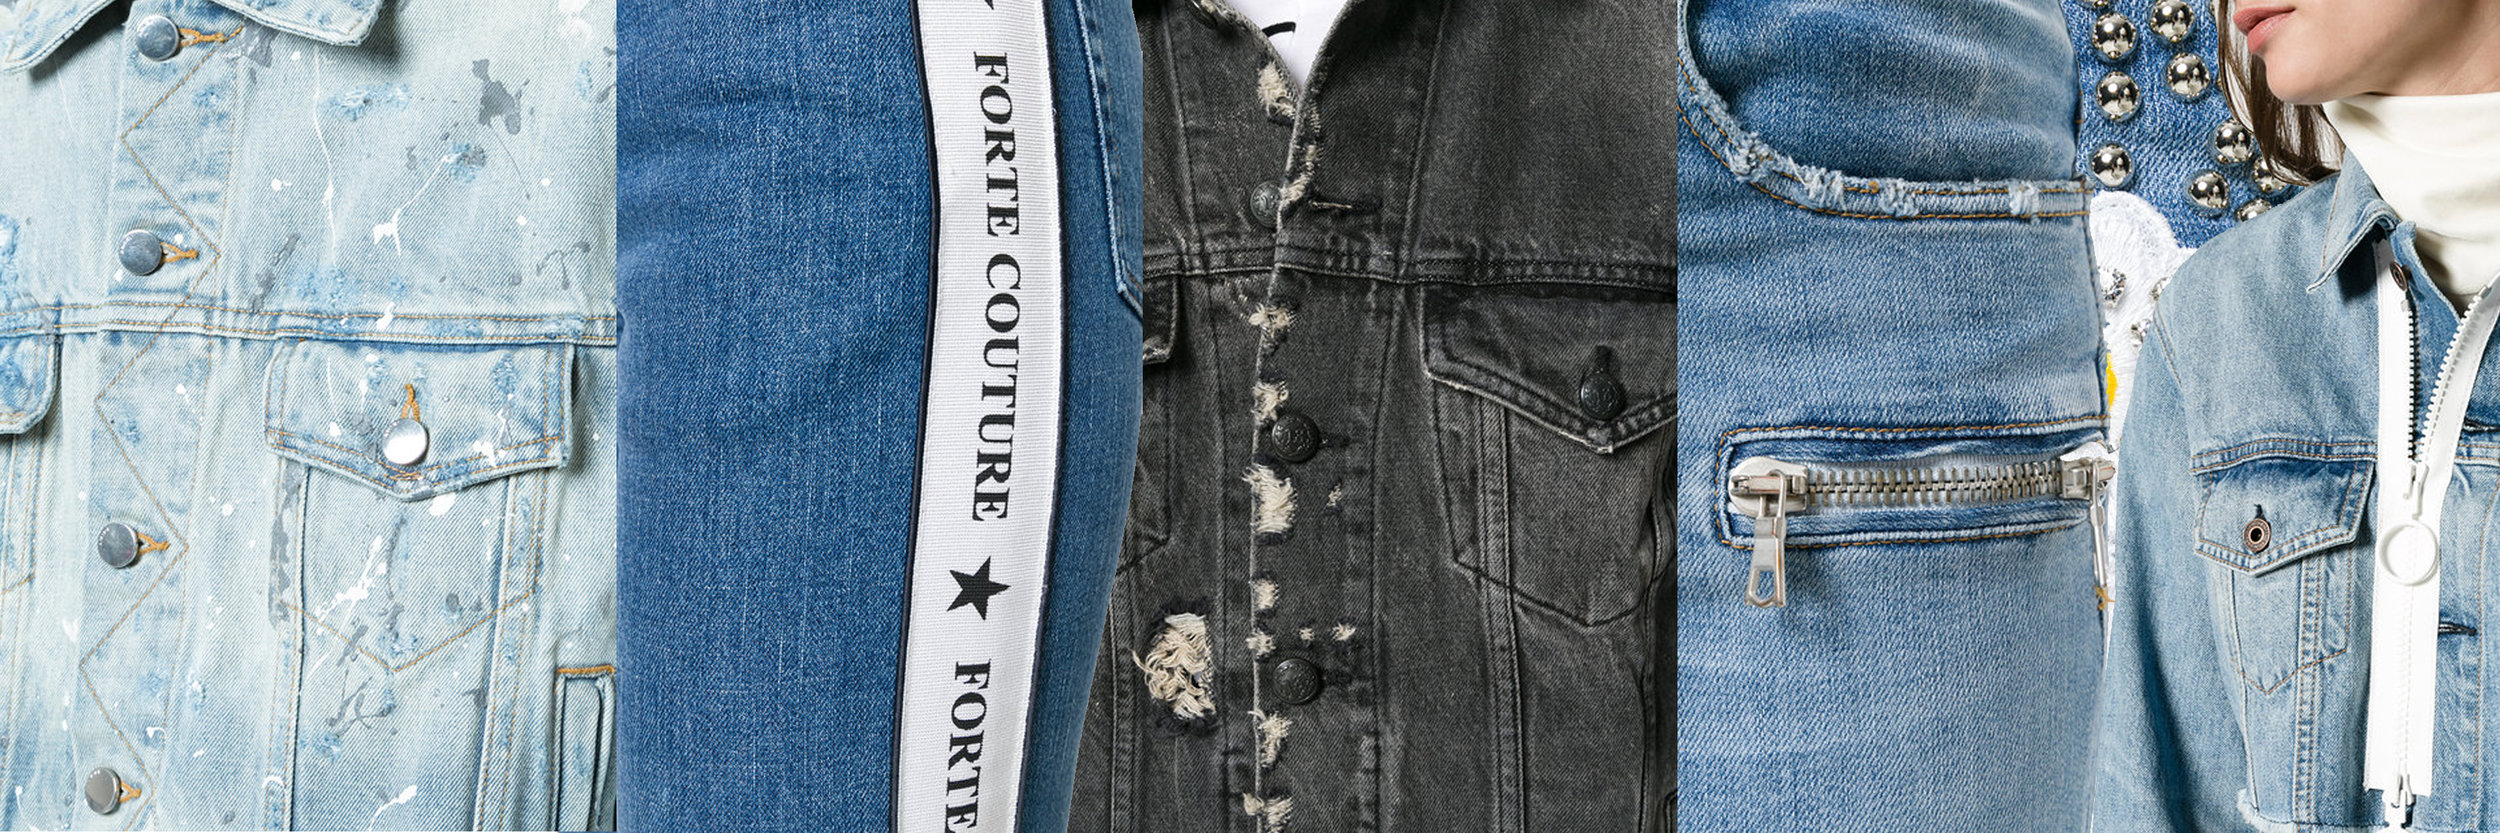 Images from left to right: AMIRI Splattered paint denim jacket   FORTE COUTURE logo banded skinny jeans  r13 distressed denim jacket  UNRAVEL PROJECT lace up front skinny jeans   Background image:PHILIPP PLEIN Light Melissa Boyfriend jeans  OFF WHITE cropped zip denim jacket